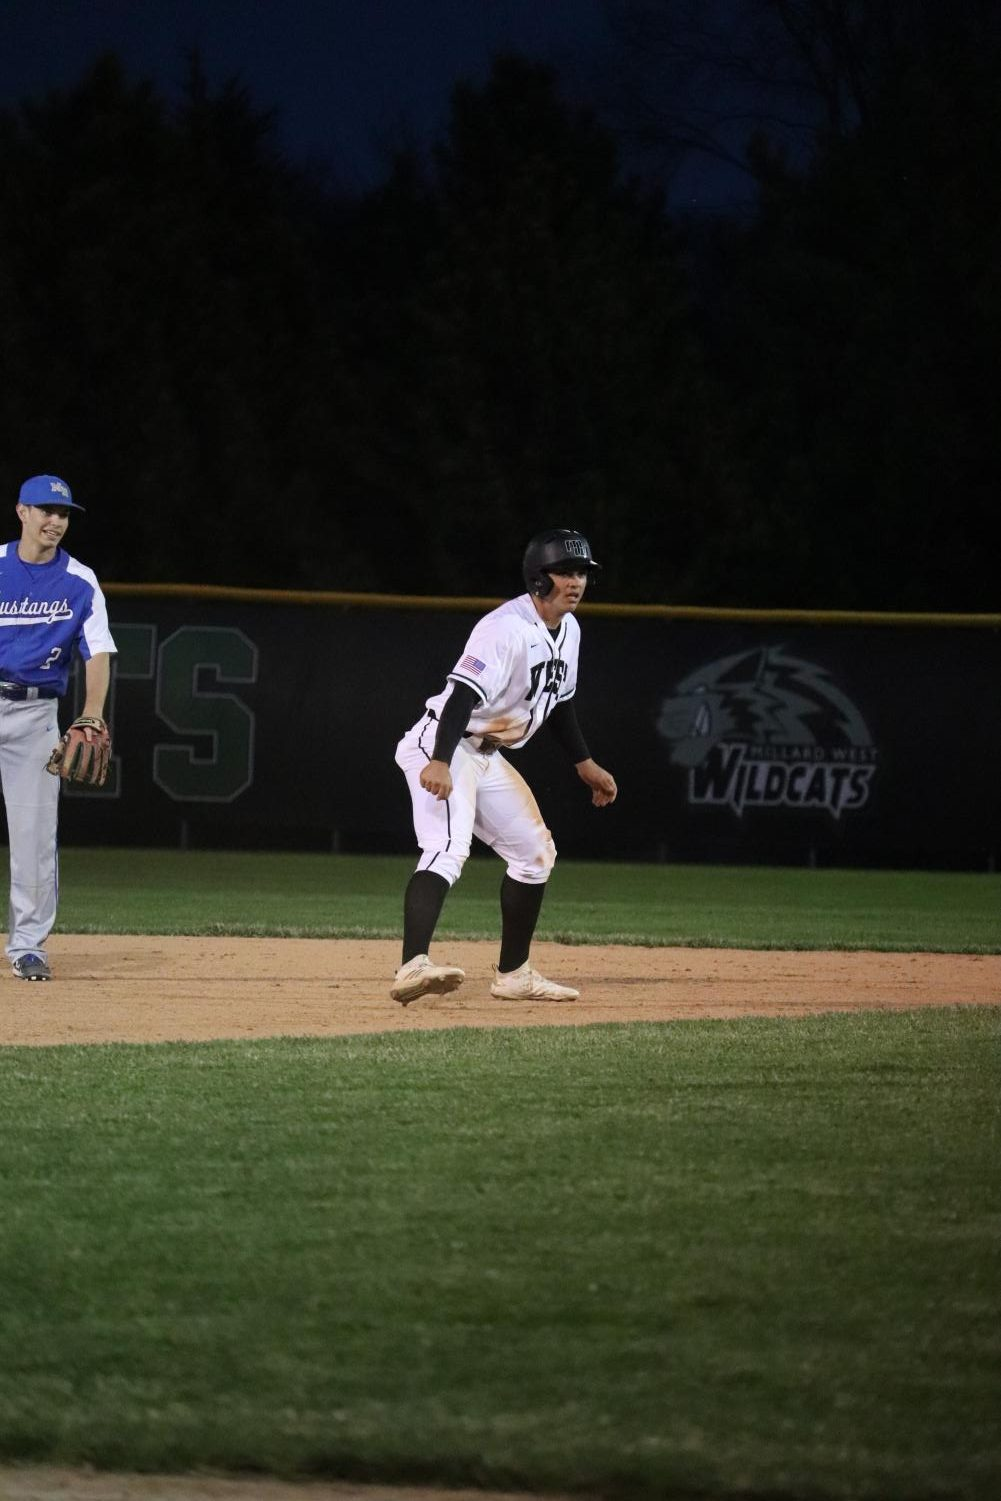 Senior+Jackson+Wright+leading+off+second+as+he+waits+for+the+pitch+to+home+plate.+